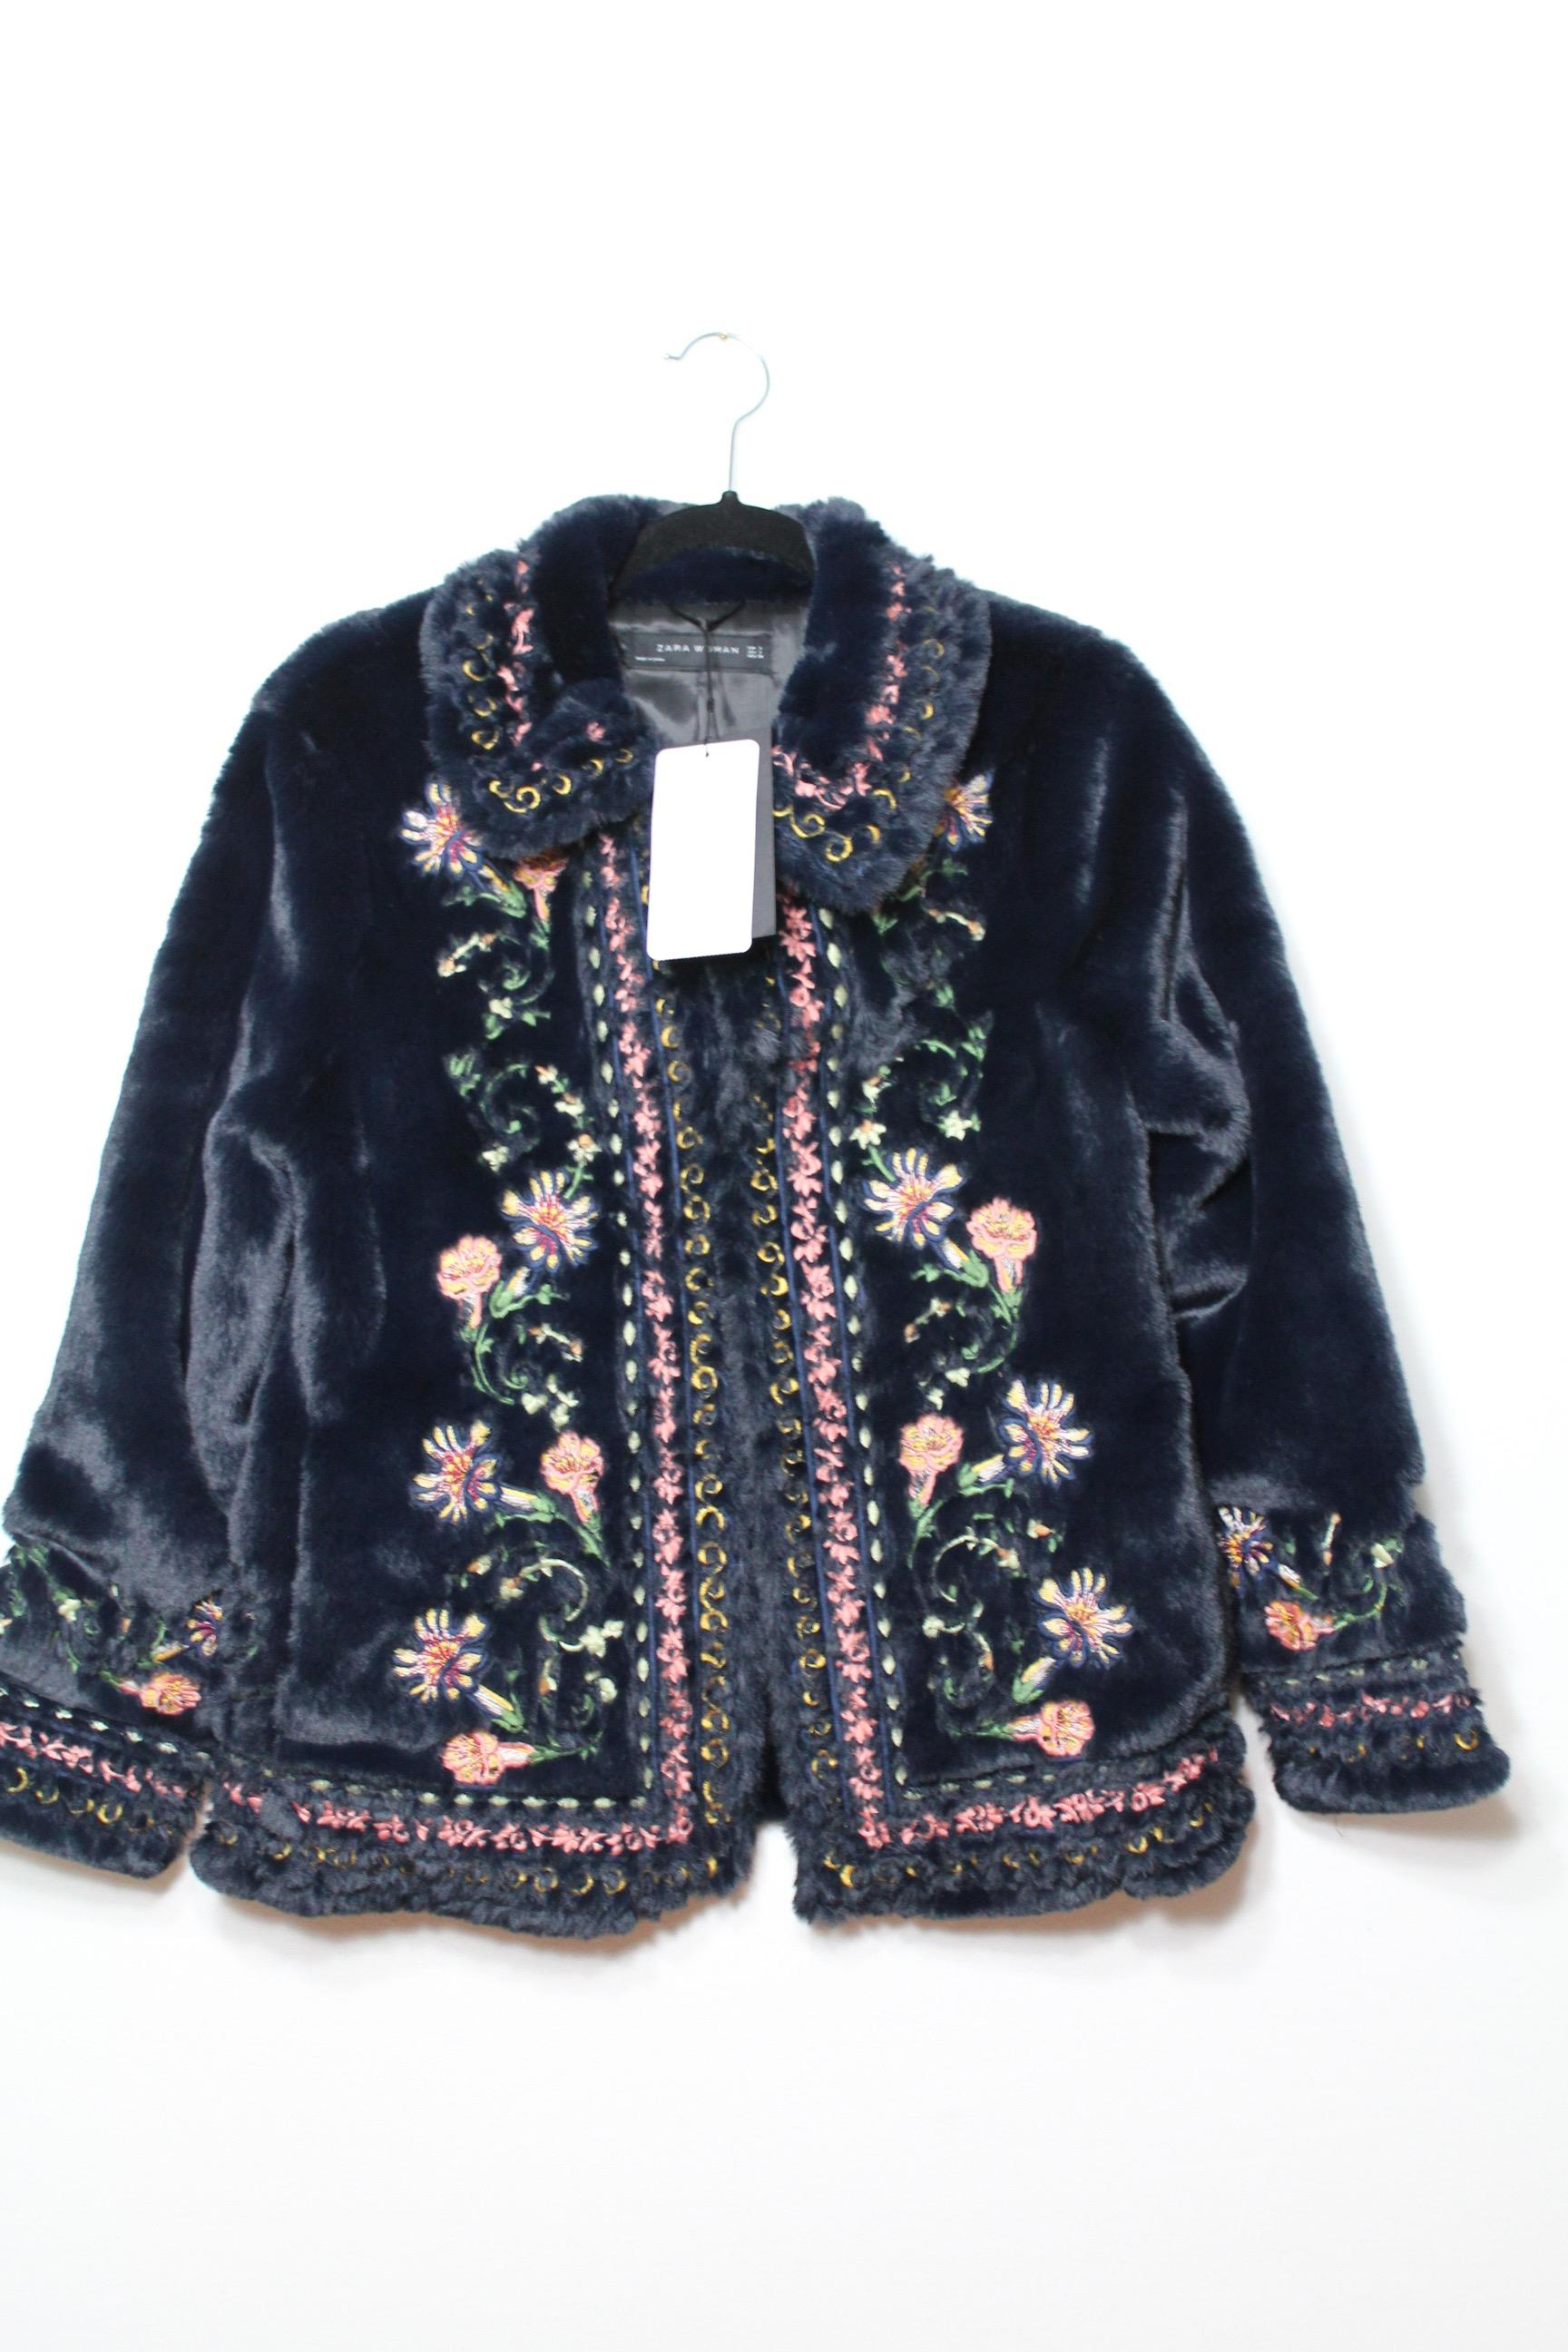 Zara Navy Blue New Tags Embroidered Floral Faux Jacket Coat Size 4 (S) - Tradesy